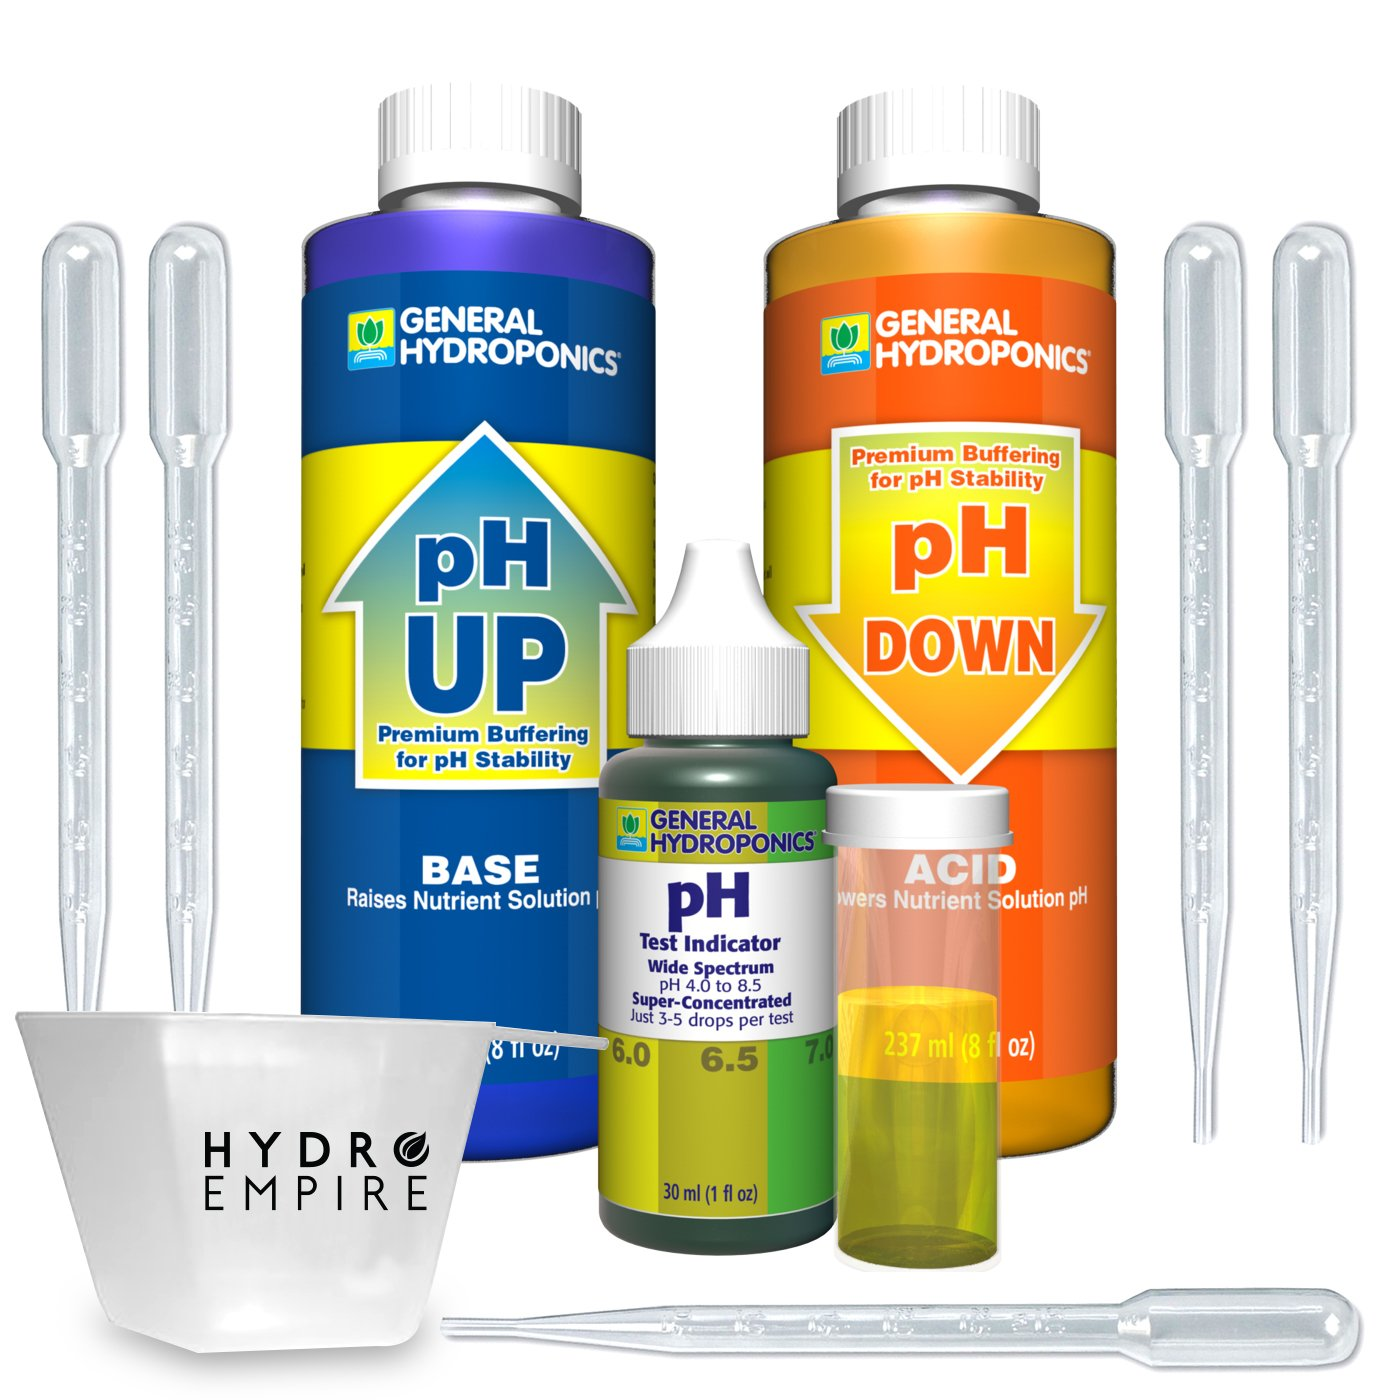 General Hydroponics pH Control Kit Adjust for 8oz pH up and Down GH Includes 5 Pipettes and Bonus Hydro Empire 4oz Measuring Cup Bundle. The Best GH pH Test kit for hydroponic Gardens on The Market!